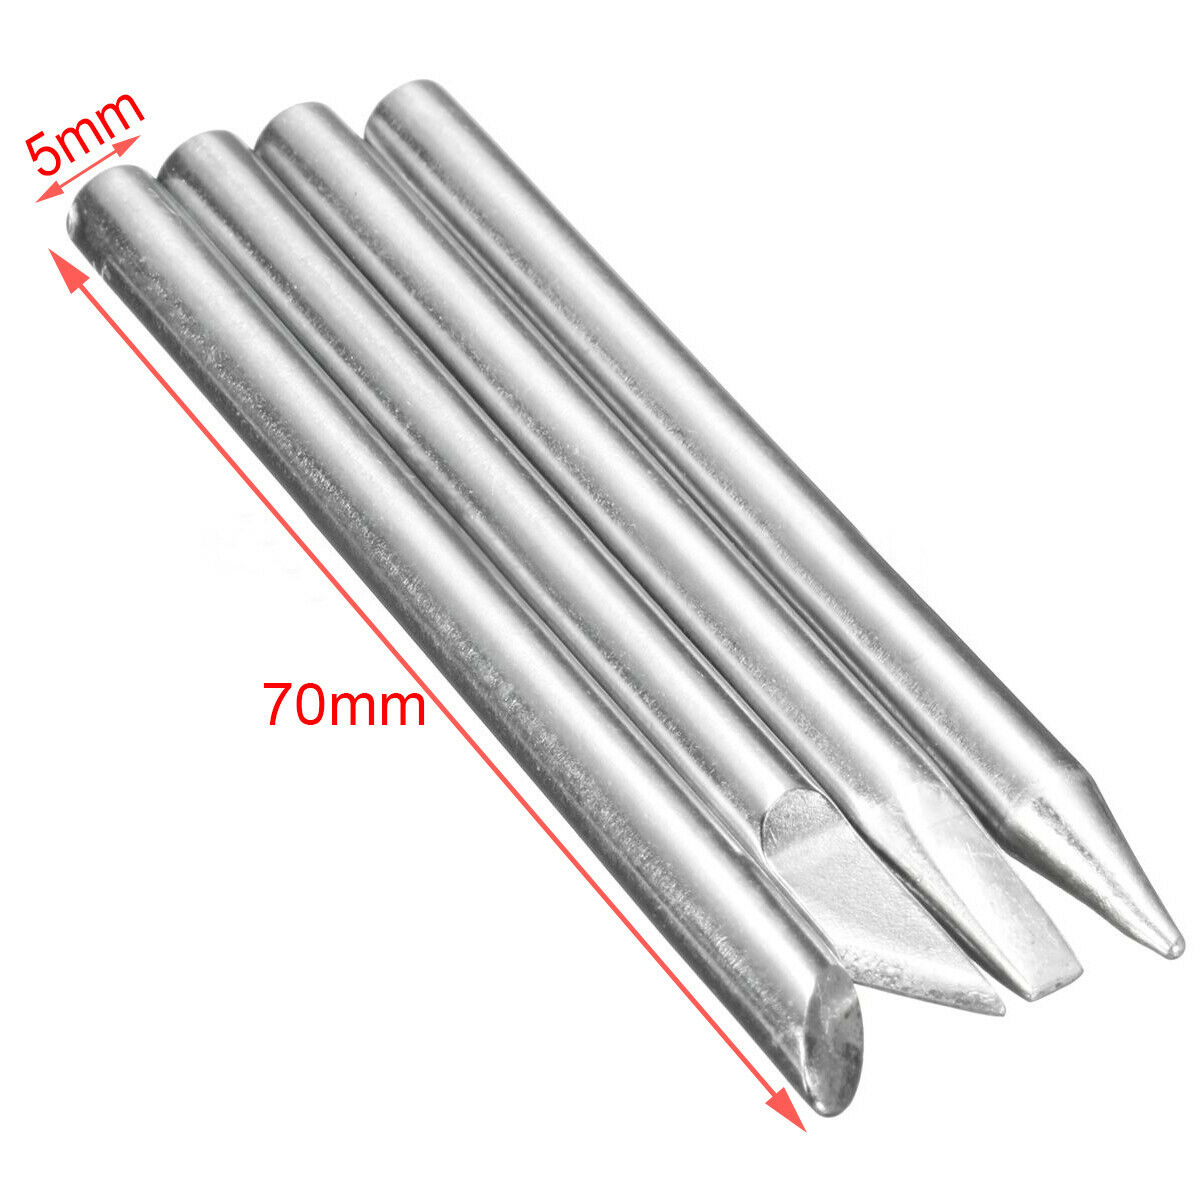 4Pcs 60W Electric Soldering Iron Tips Head Welding Lead 5mm For Solder Station